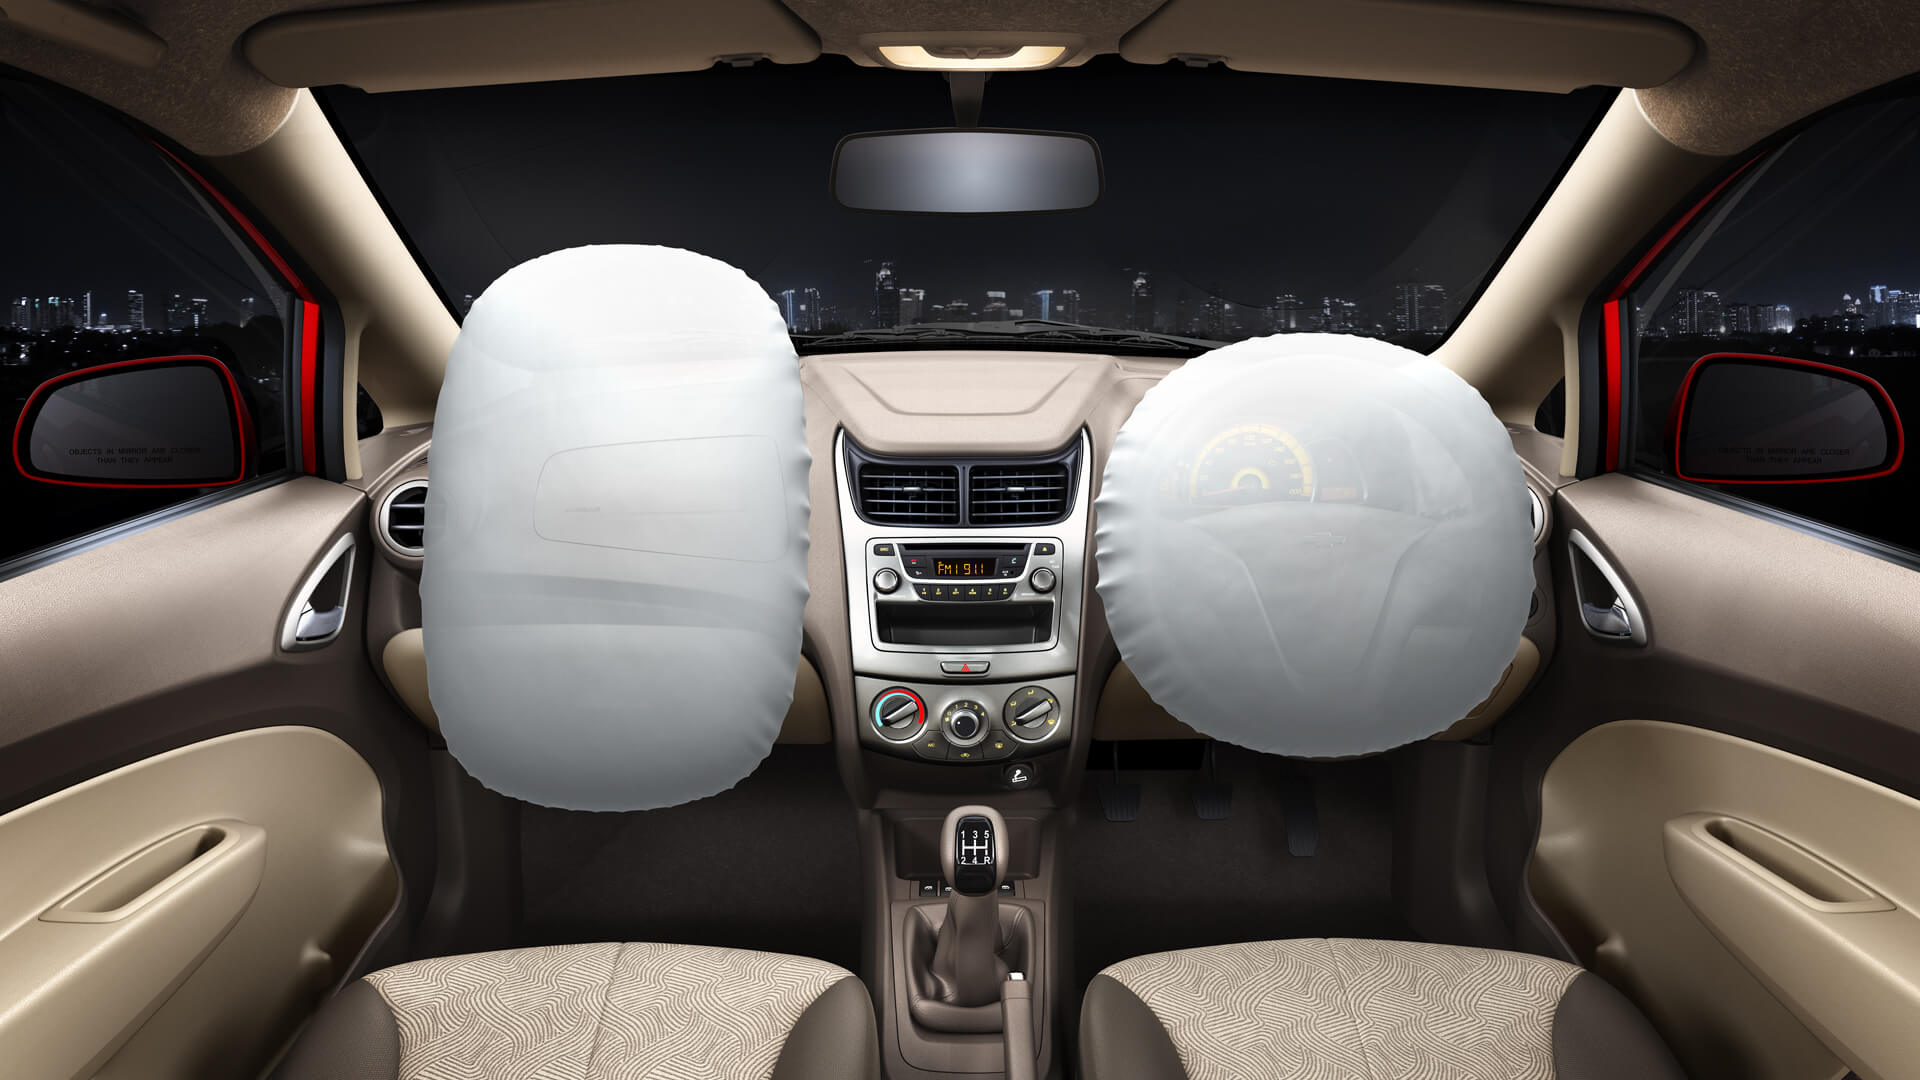 All cars in India from 2019 to be fitted with mandatory airbags,seat belt reminder, speed alerts above 80km/hr and parking sensors